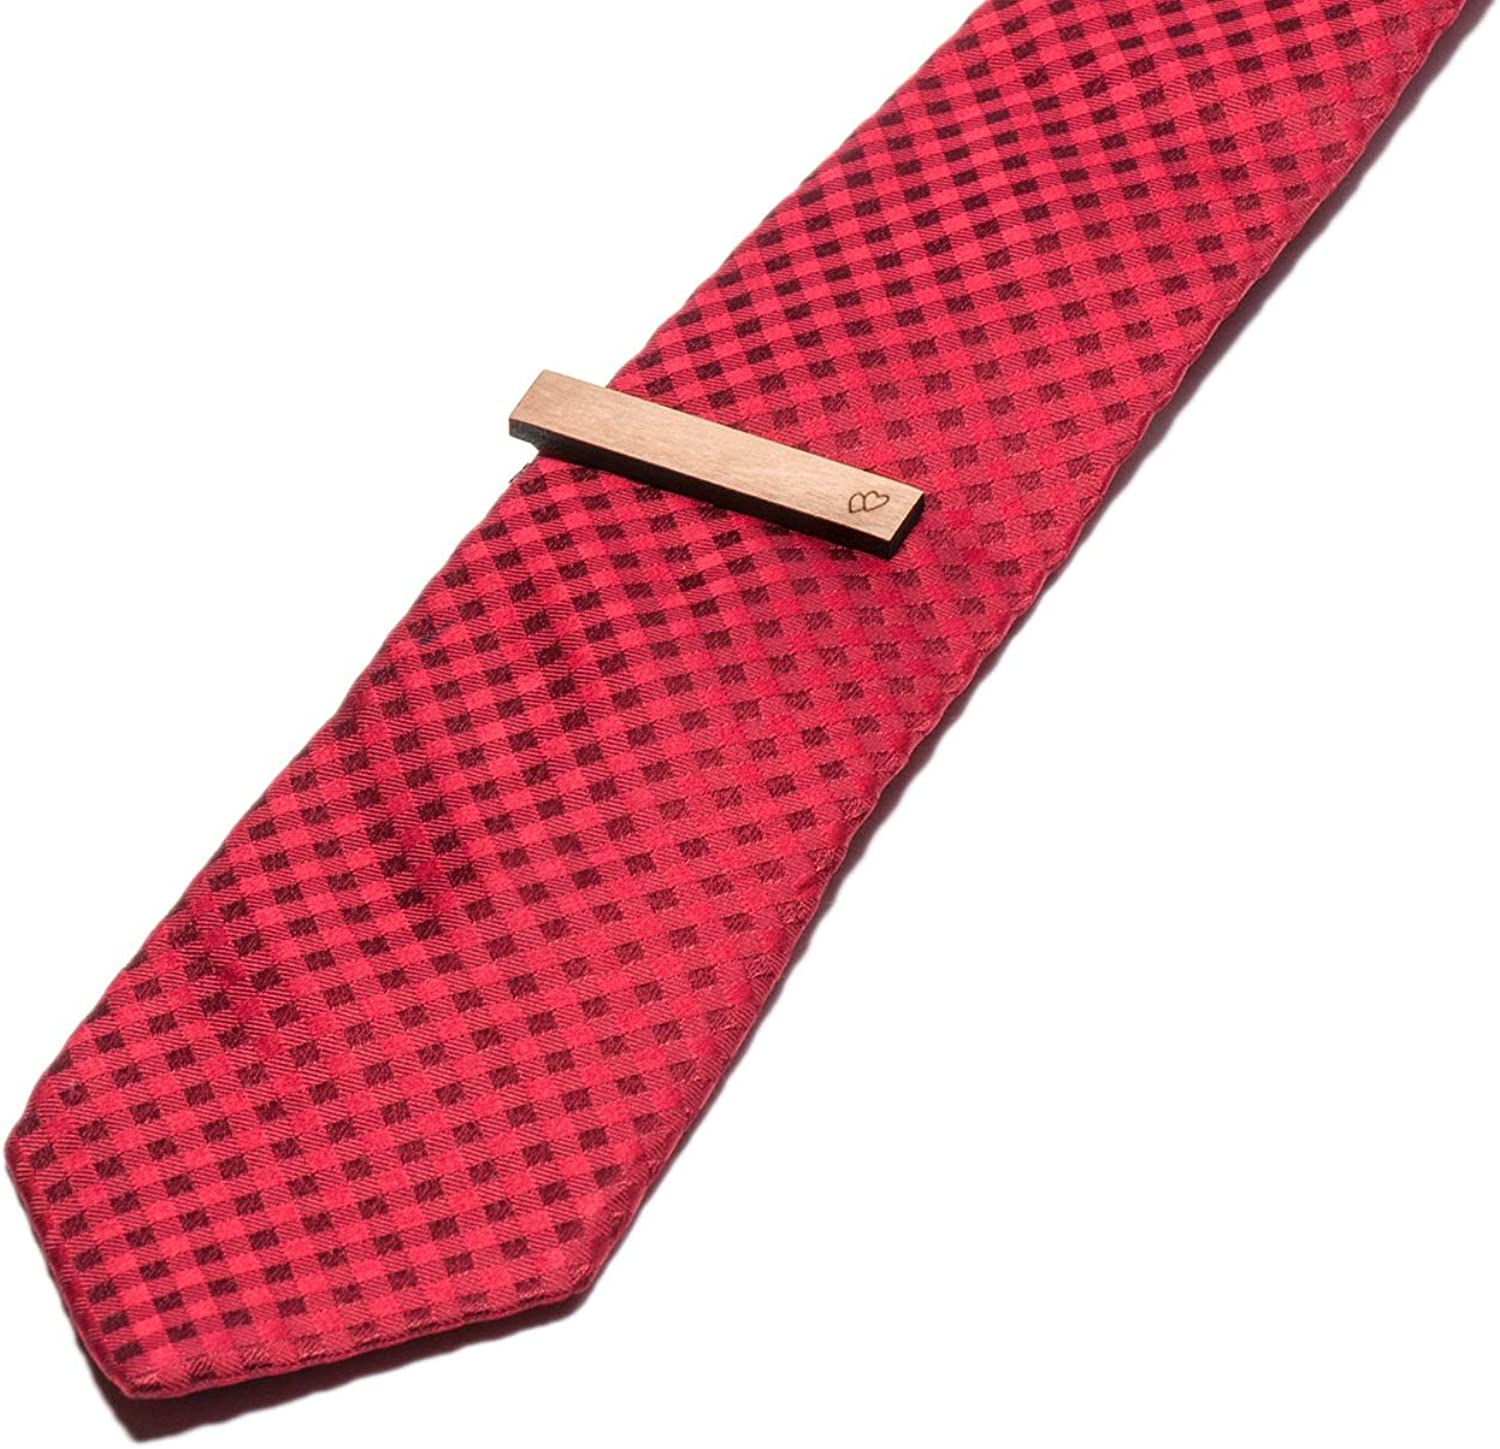 Wooden Accessories Company Wooden Tie Clips with Laser Engraved Saint Valentine Design Cherry Wood Tie Bar Engraved in The USA